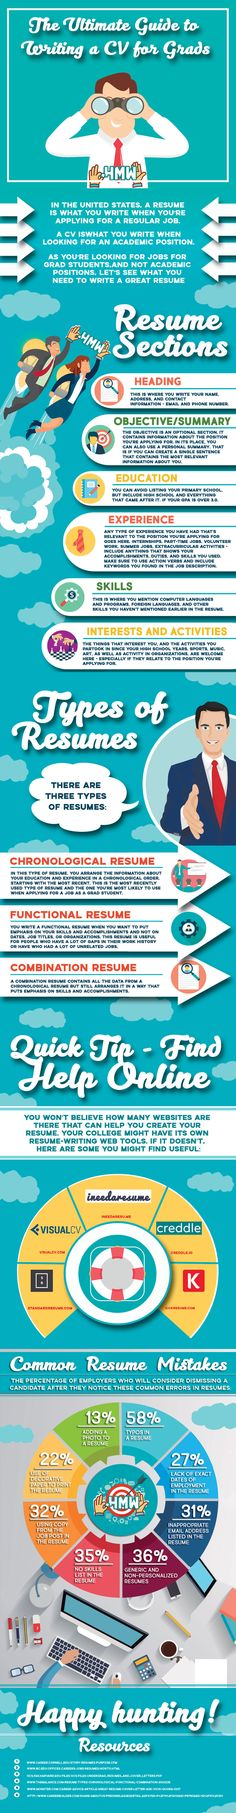 Pin by Accél Monroe Paramour on SELF MARKETING RÉSUMÉ Pinterest - common resume mistakes